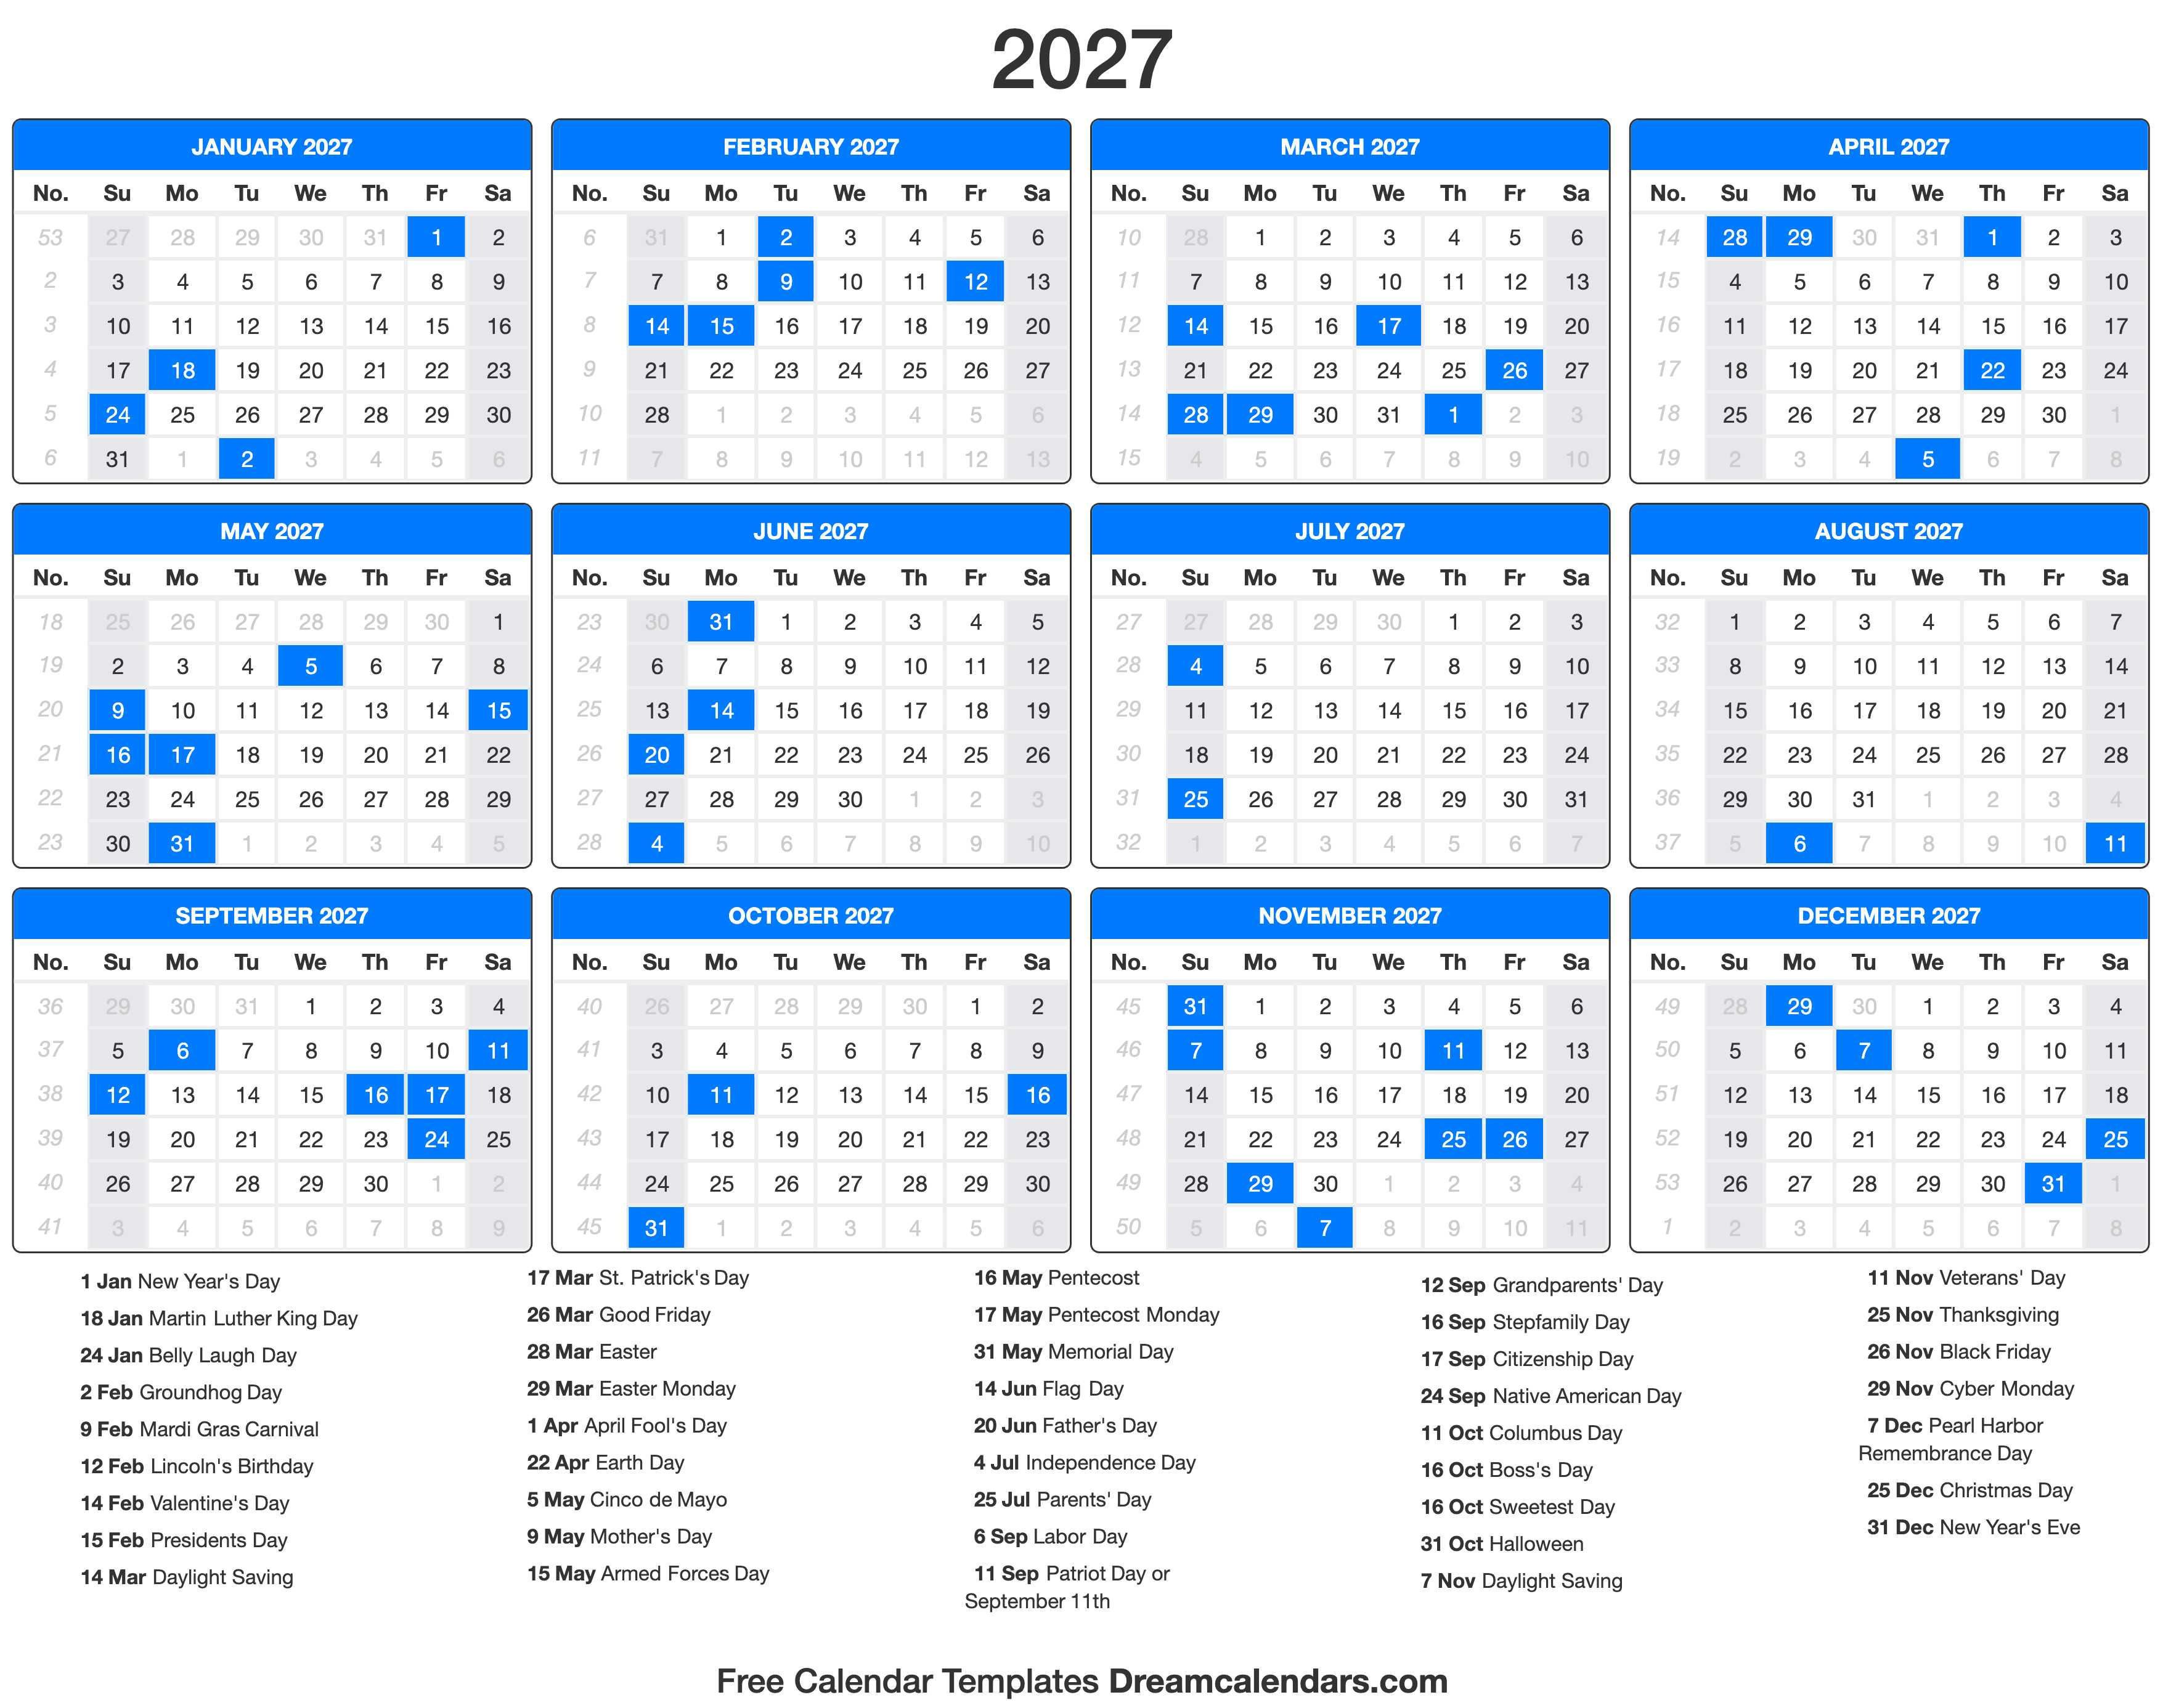 2027 Calendar with holidays